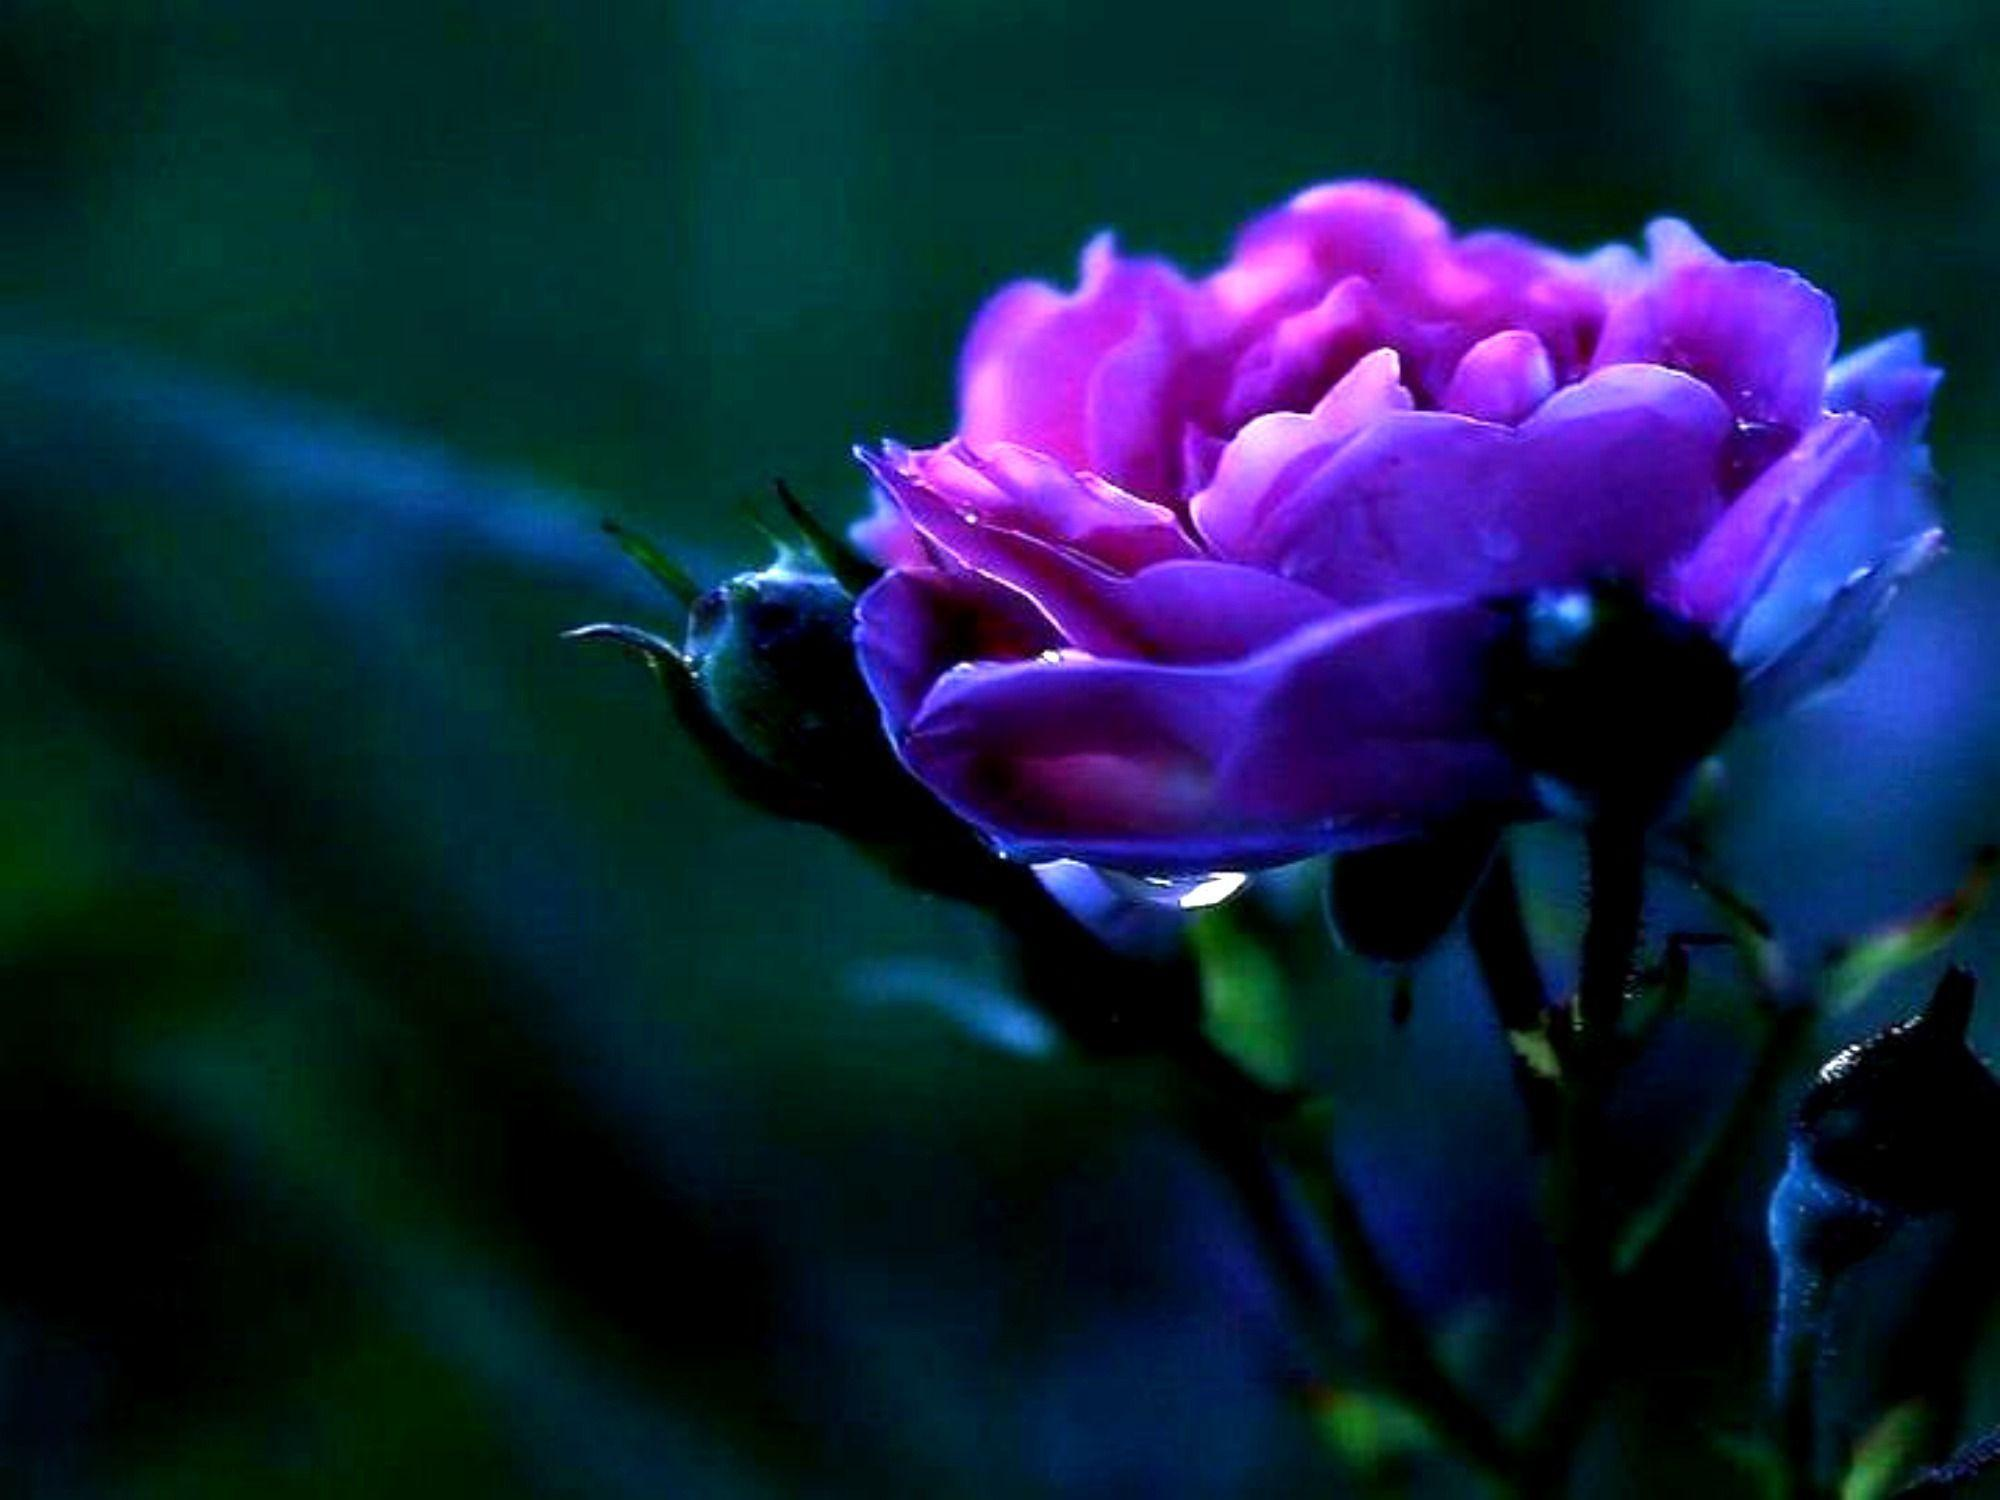 Purple Roses Background Images: Violet Rose Wallpapers